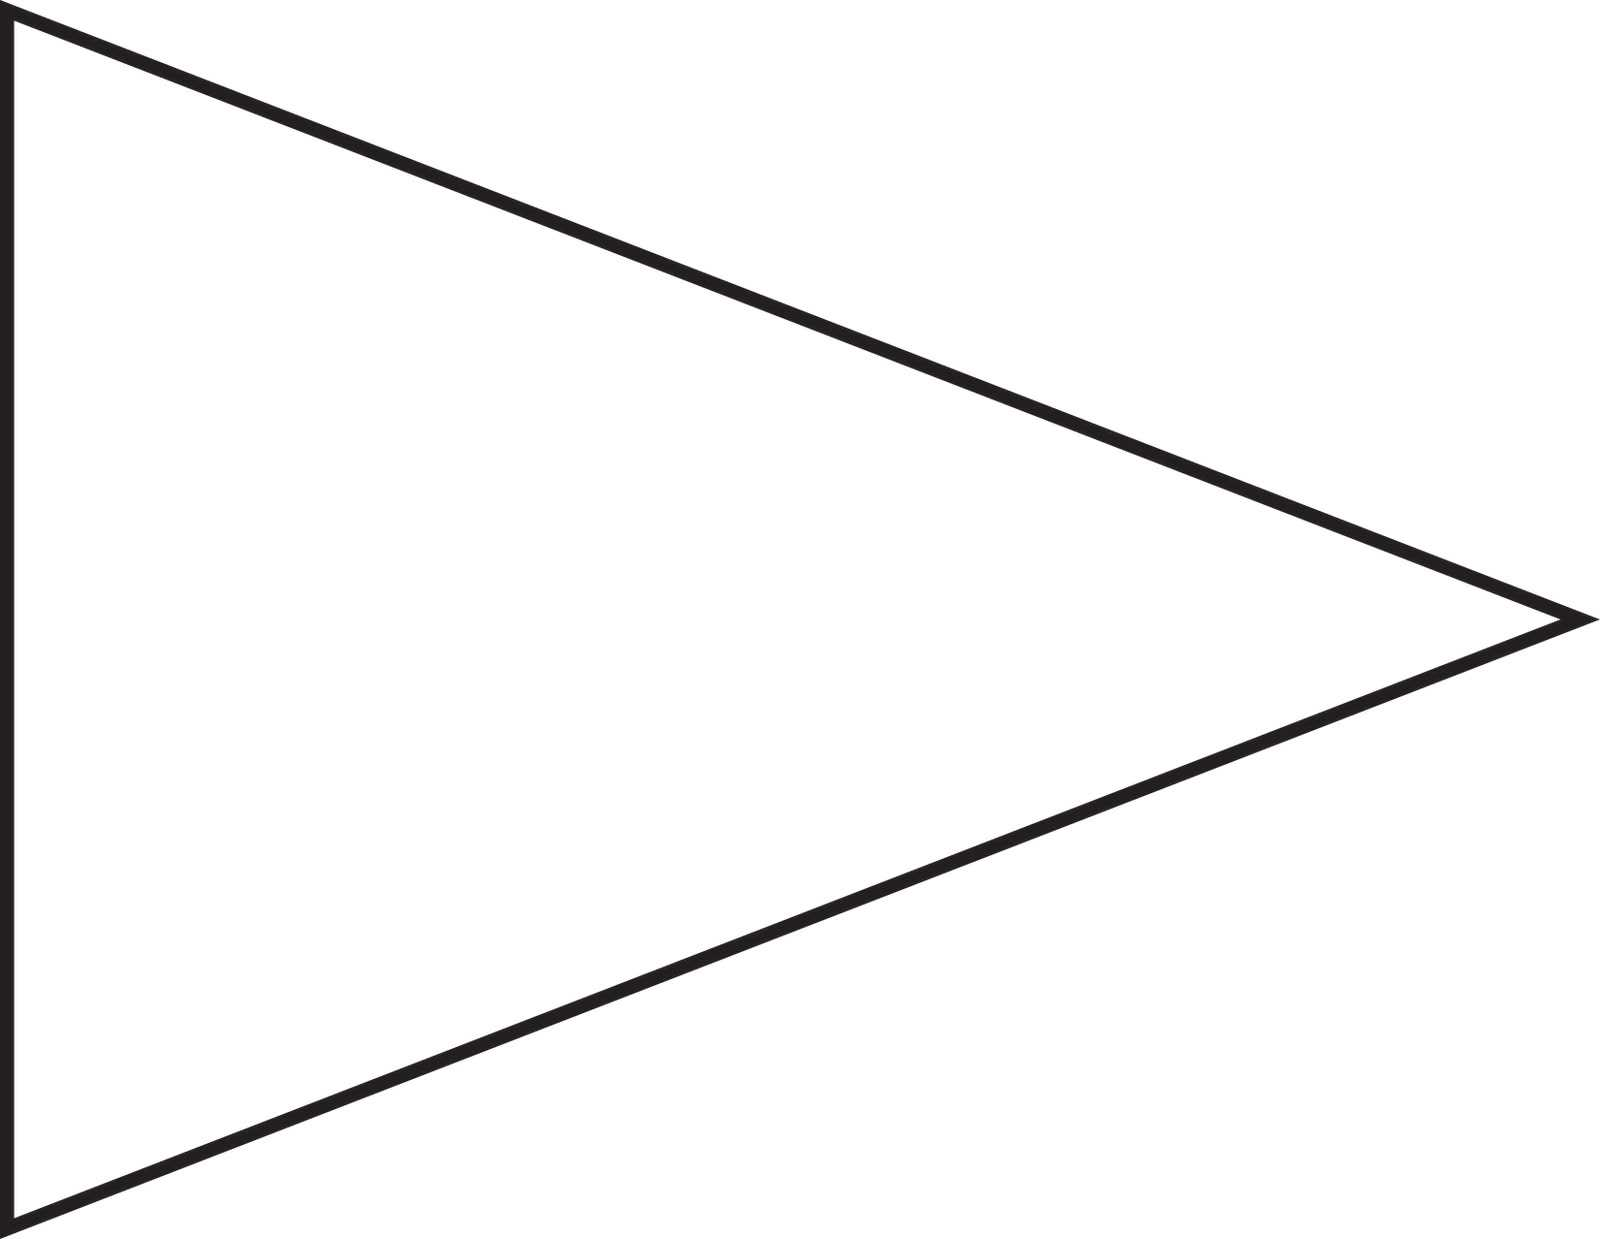 Free Pennant Banner Template, Download Free Clip Art, Free Intended For Free Triangle Banner Template